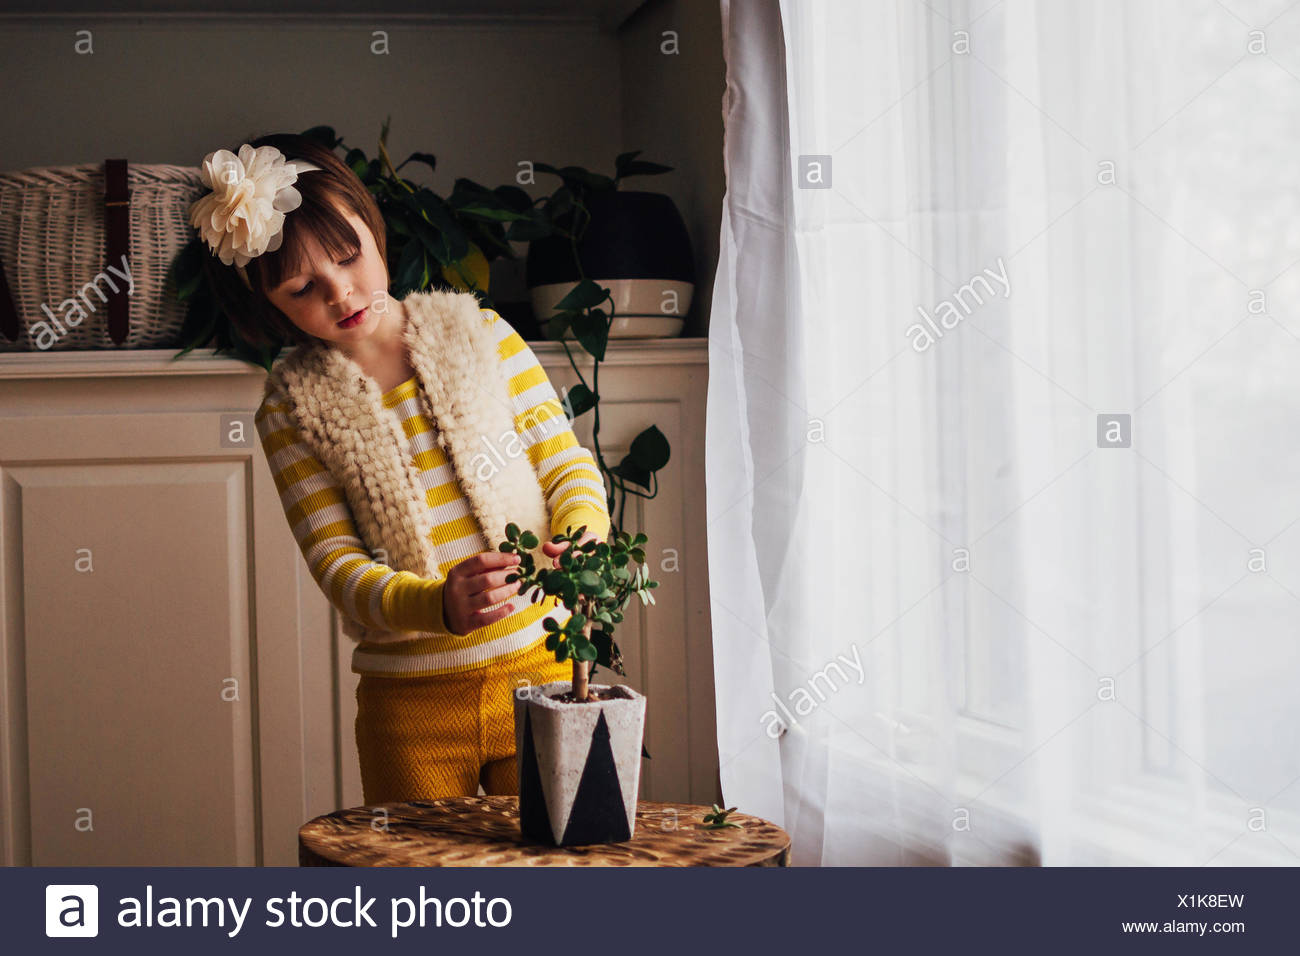 Girl tending to a plant in living room - Stock Image